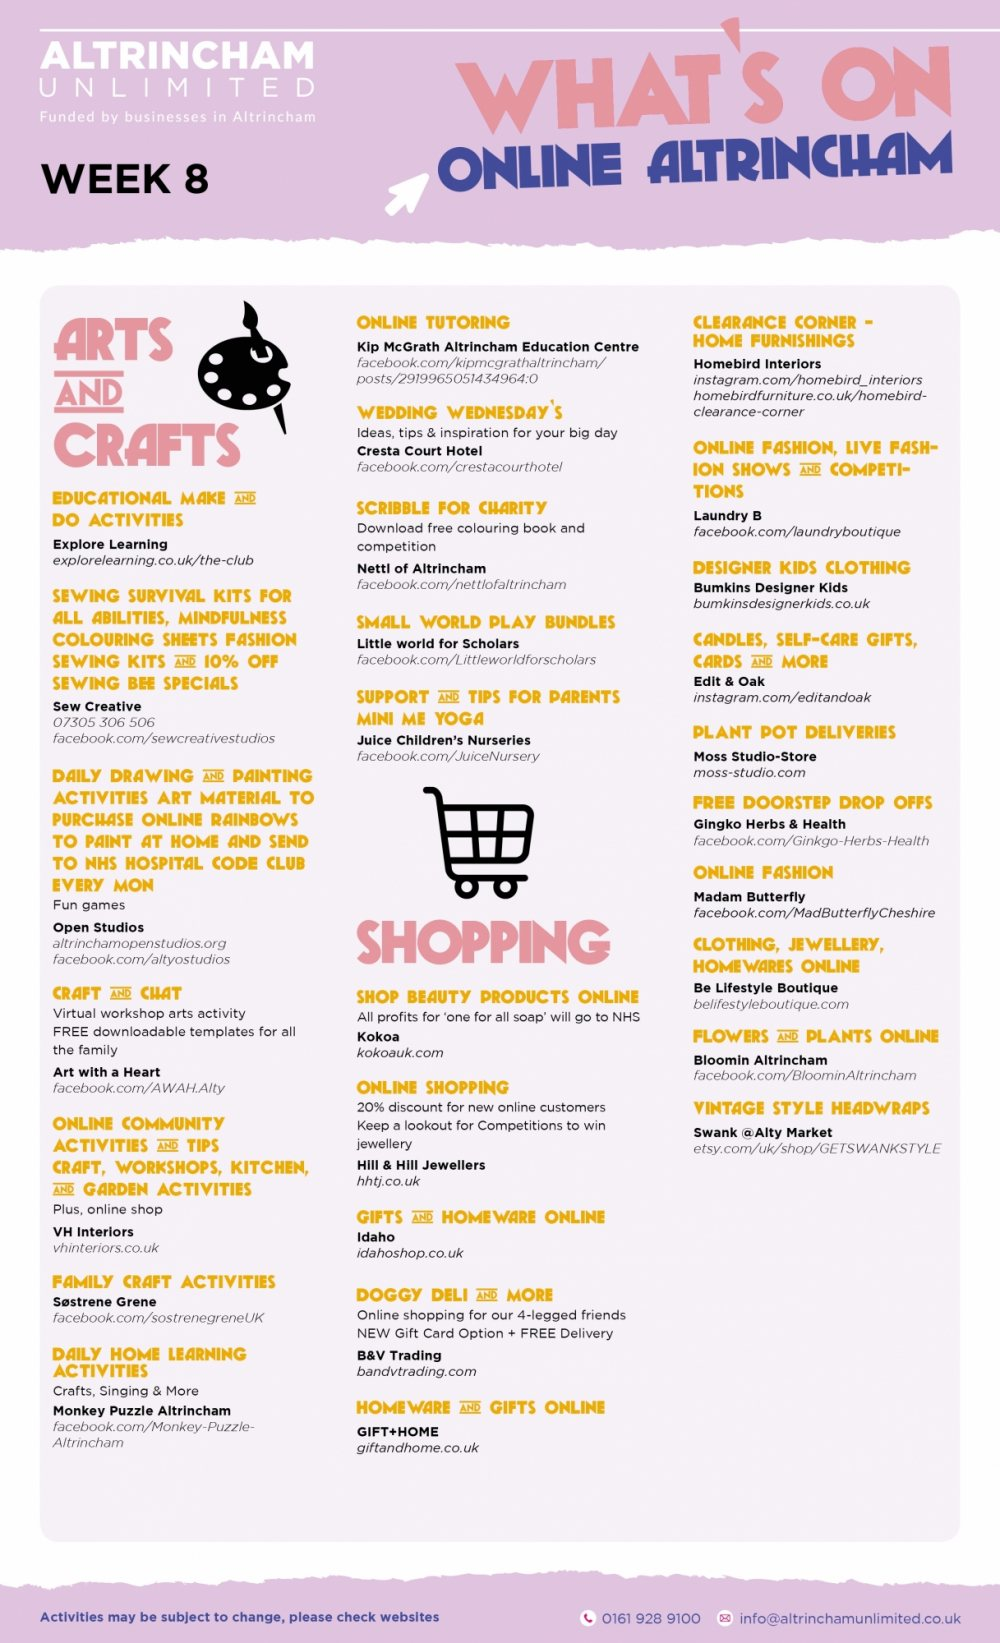 What's On Guides - Takeaway, Retail and Online